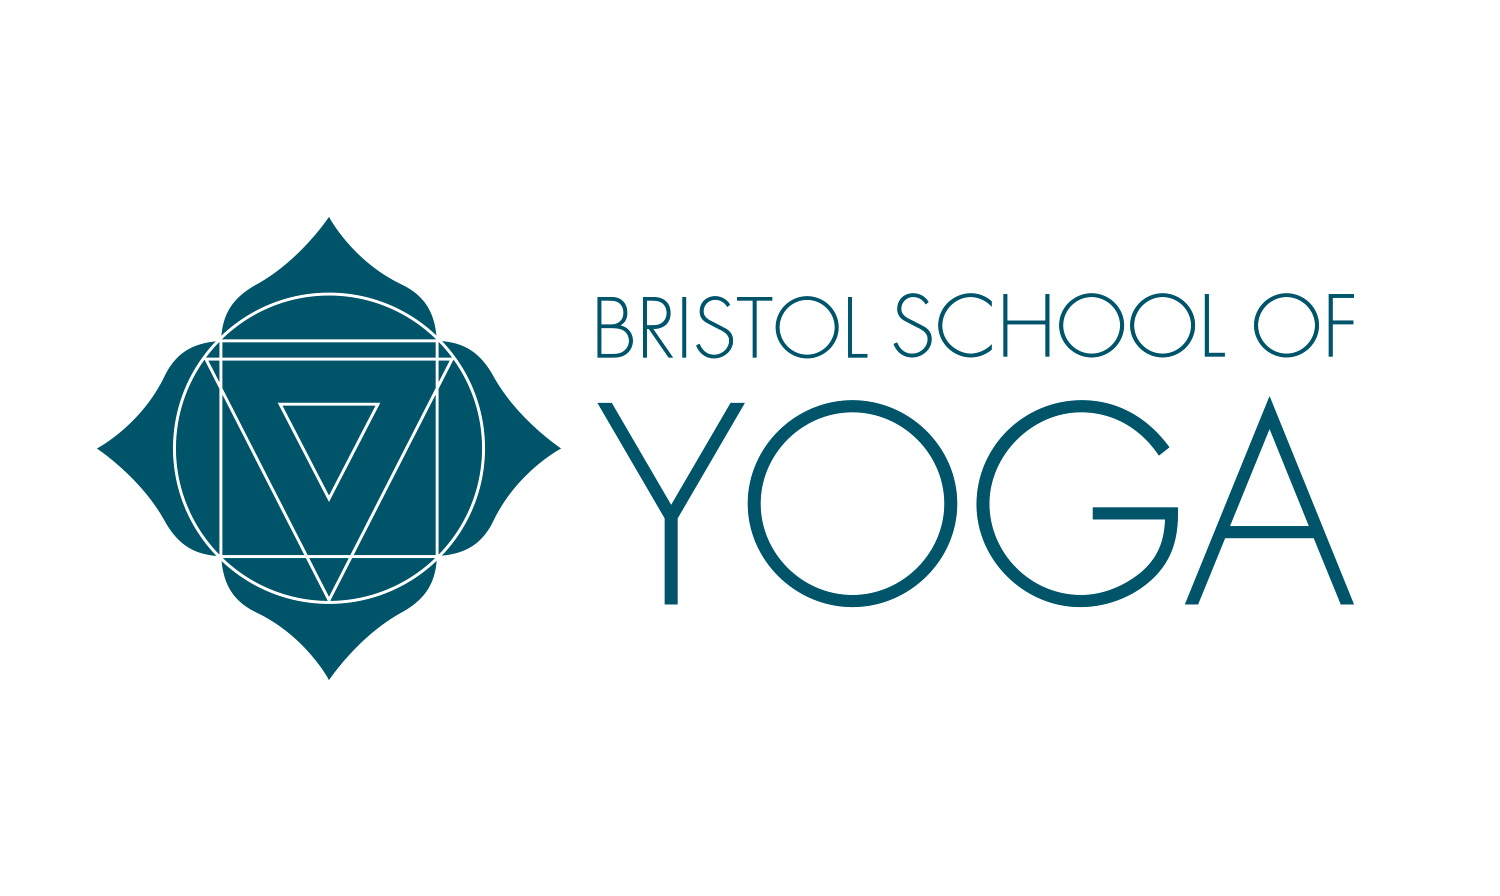 Copy of Bristol School of Yoga